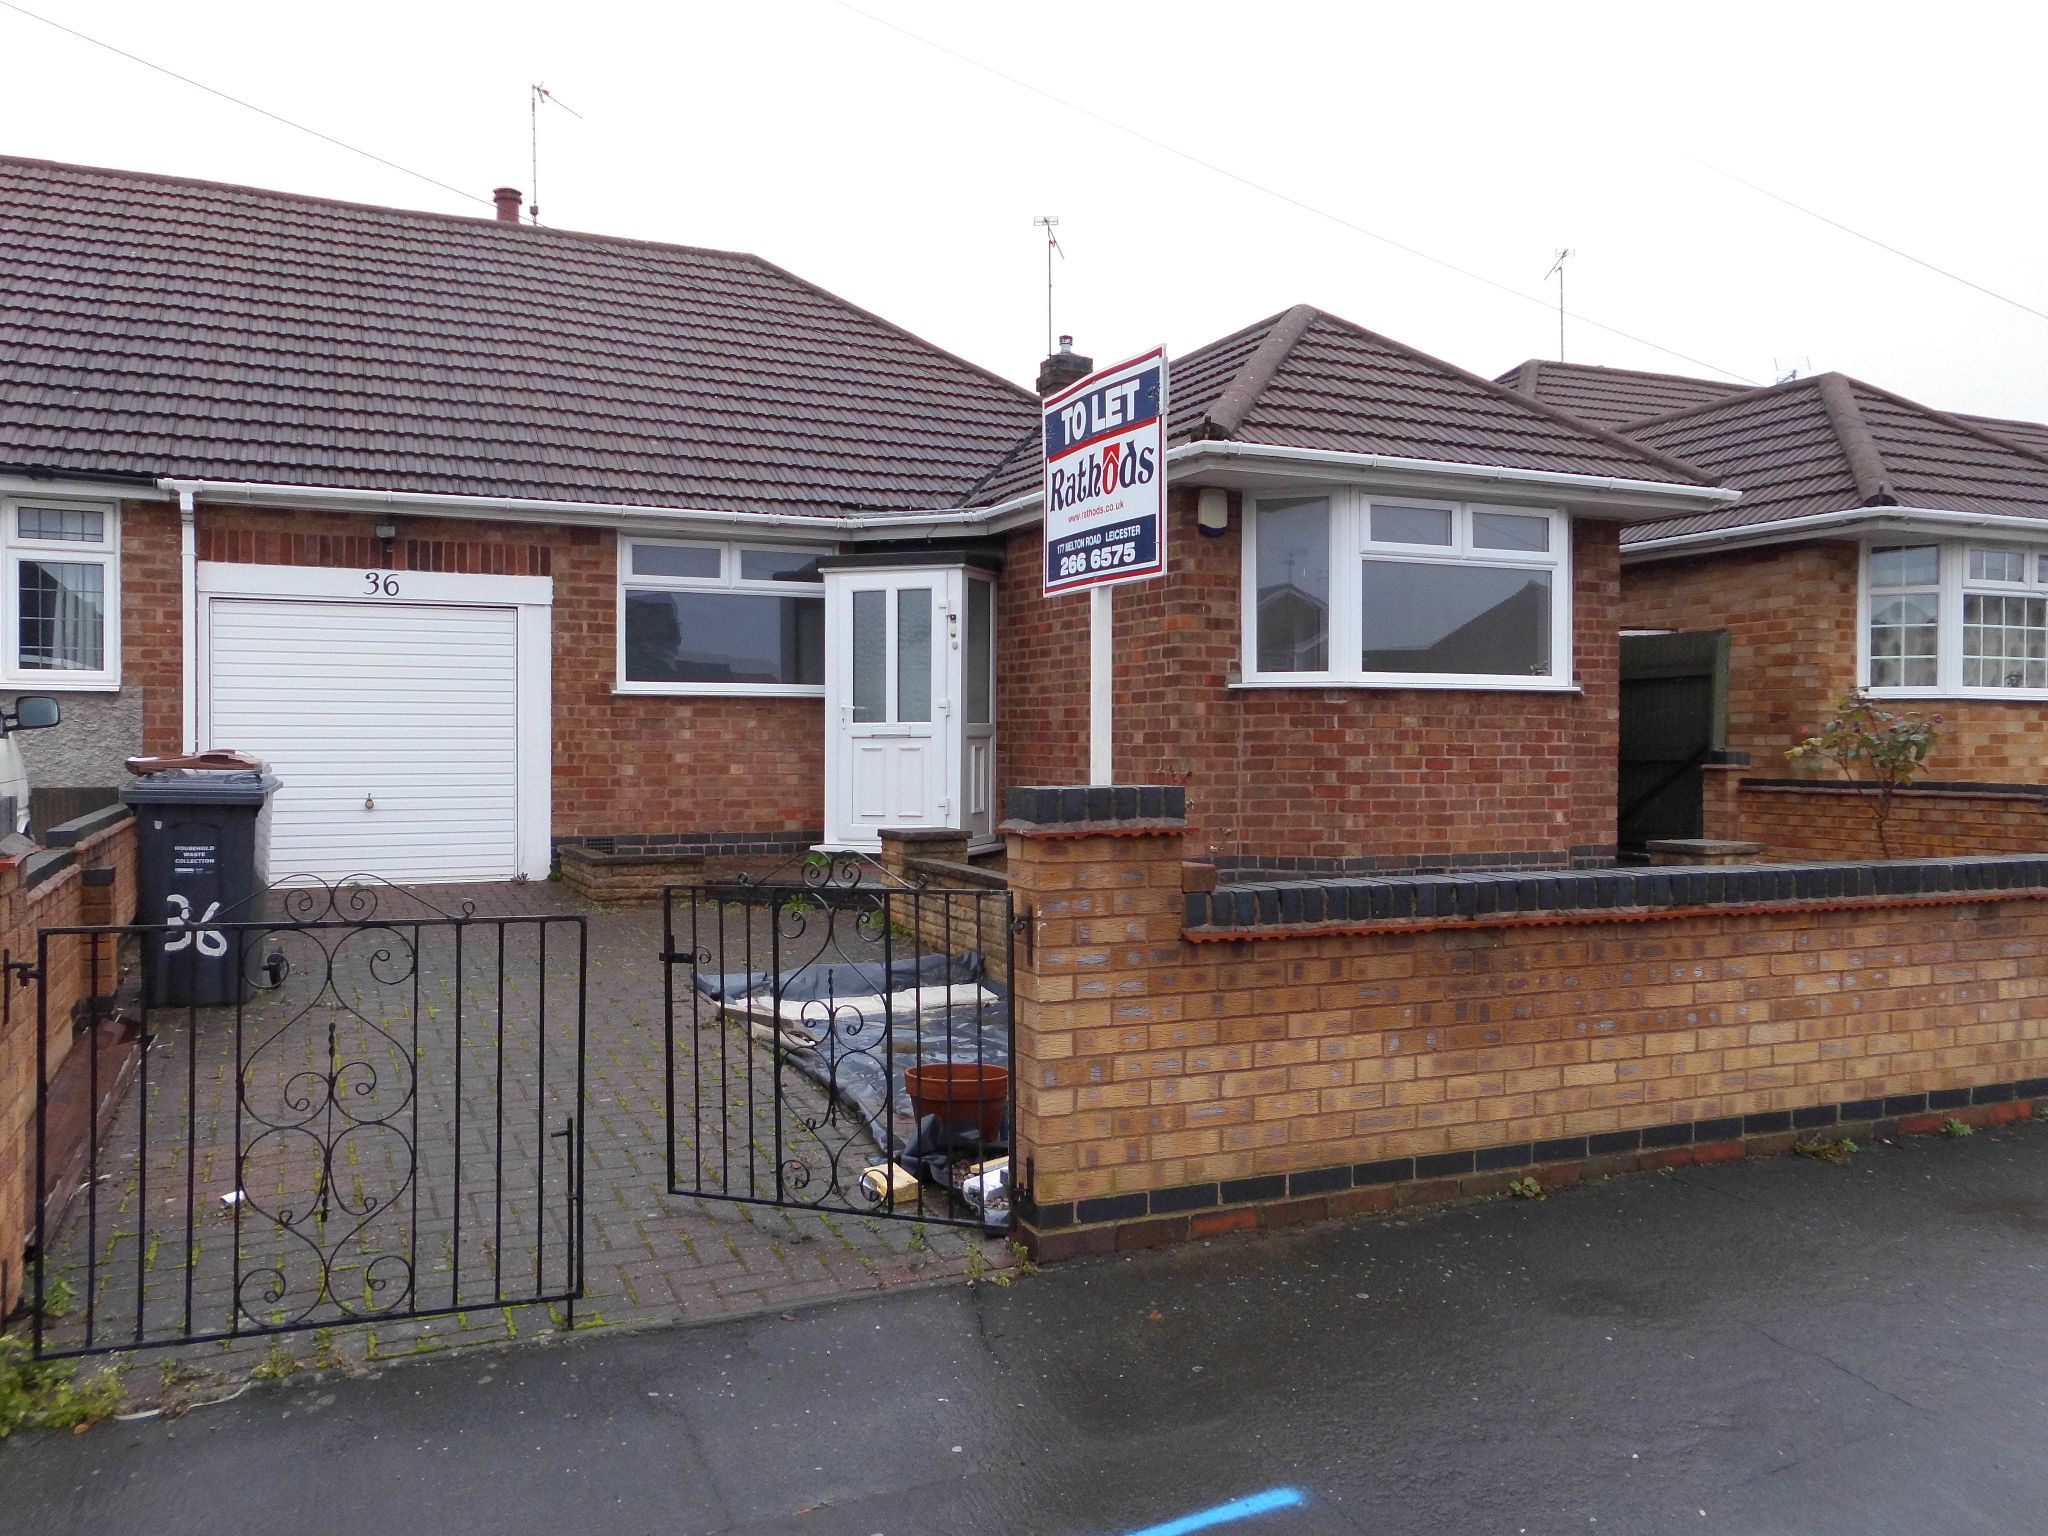 3 Bedroom Semi-detached Bungalow To Let 36 Southdown Drive Main Image